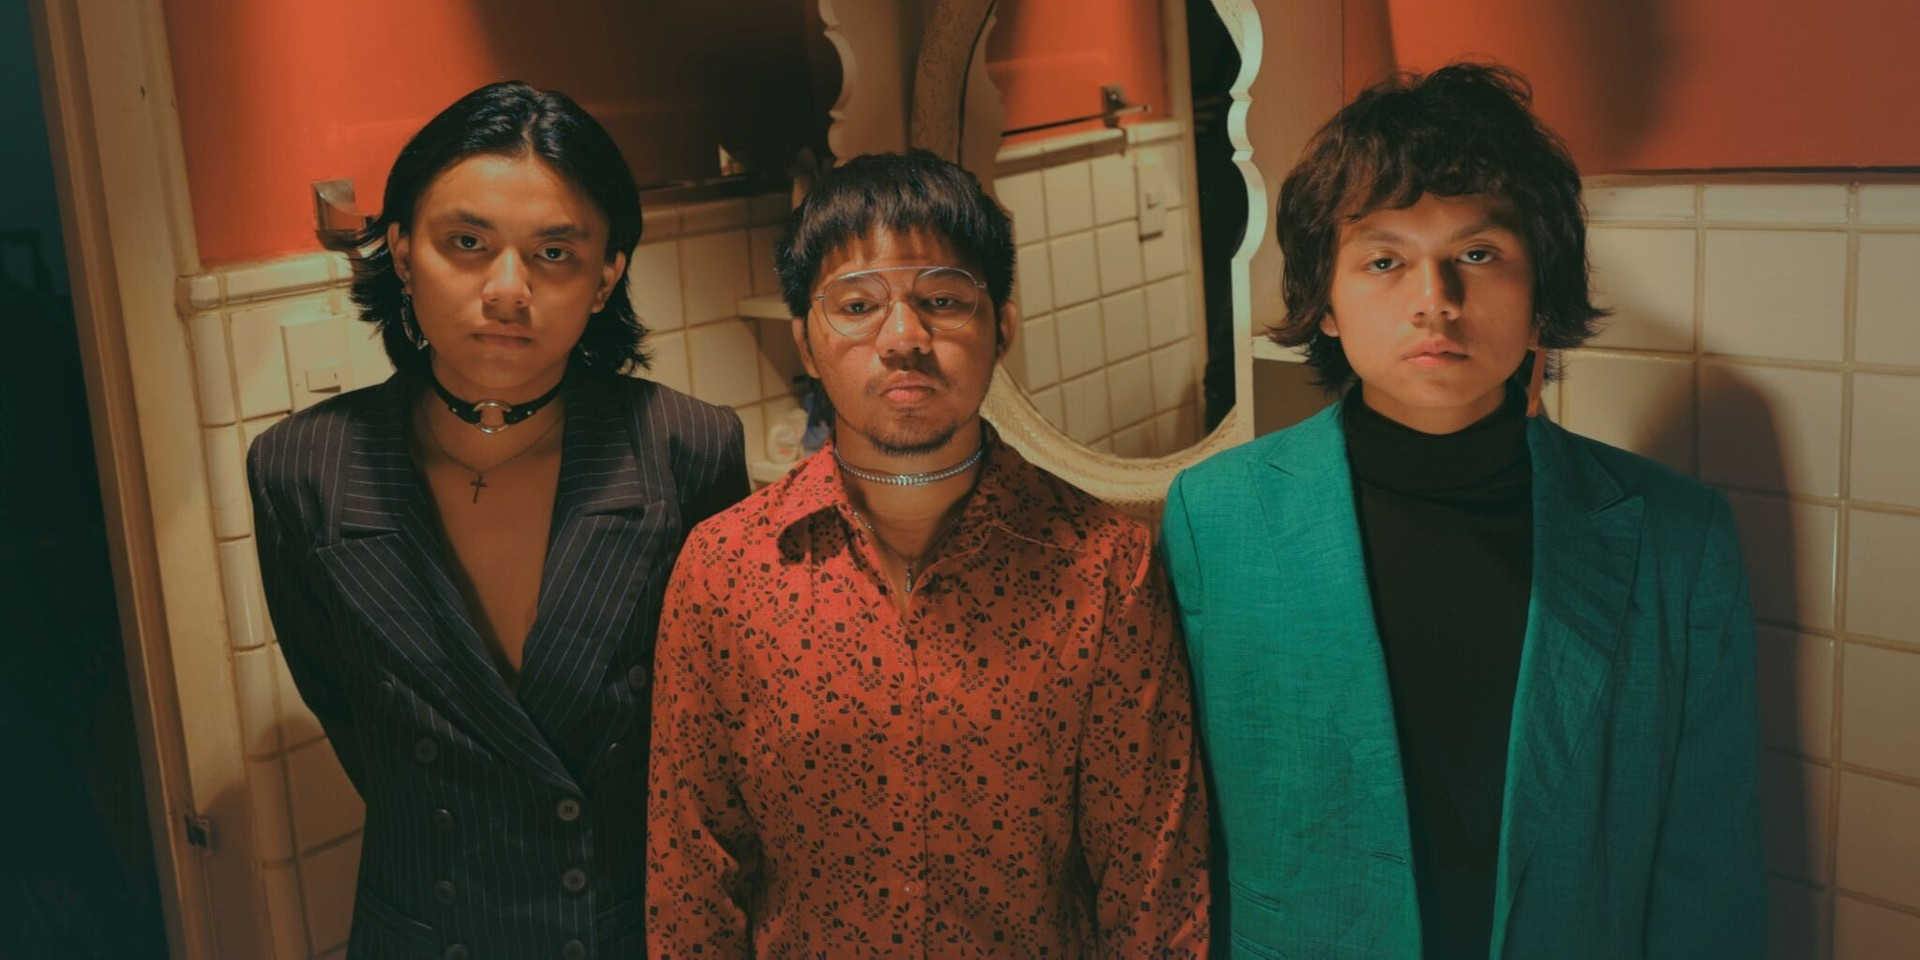 IV of Spades tease something new with cryptic post